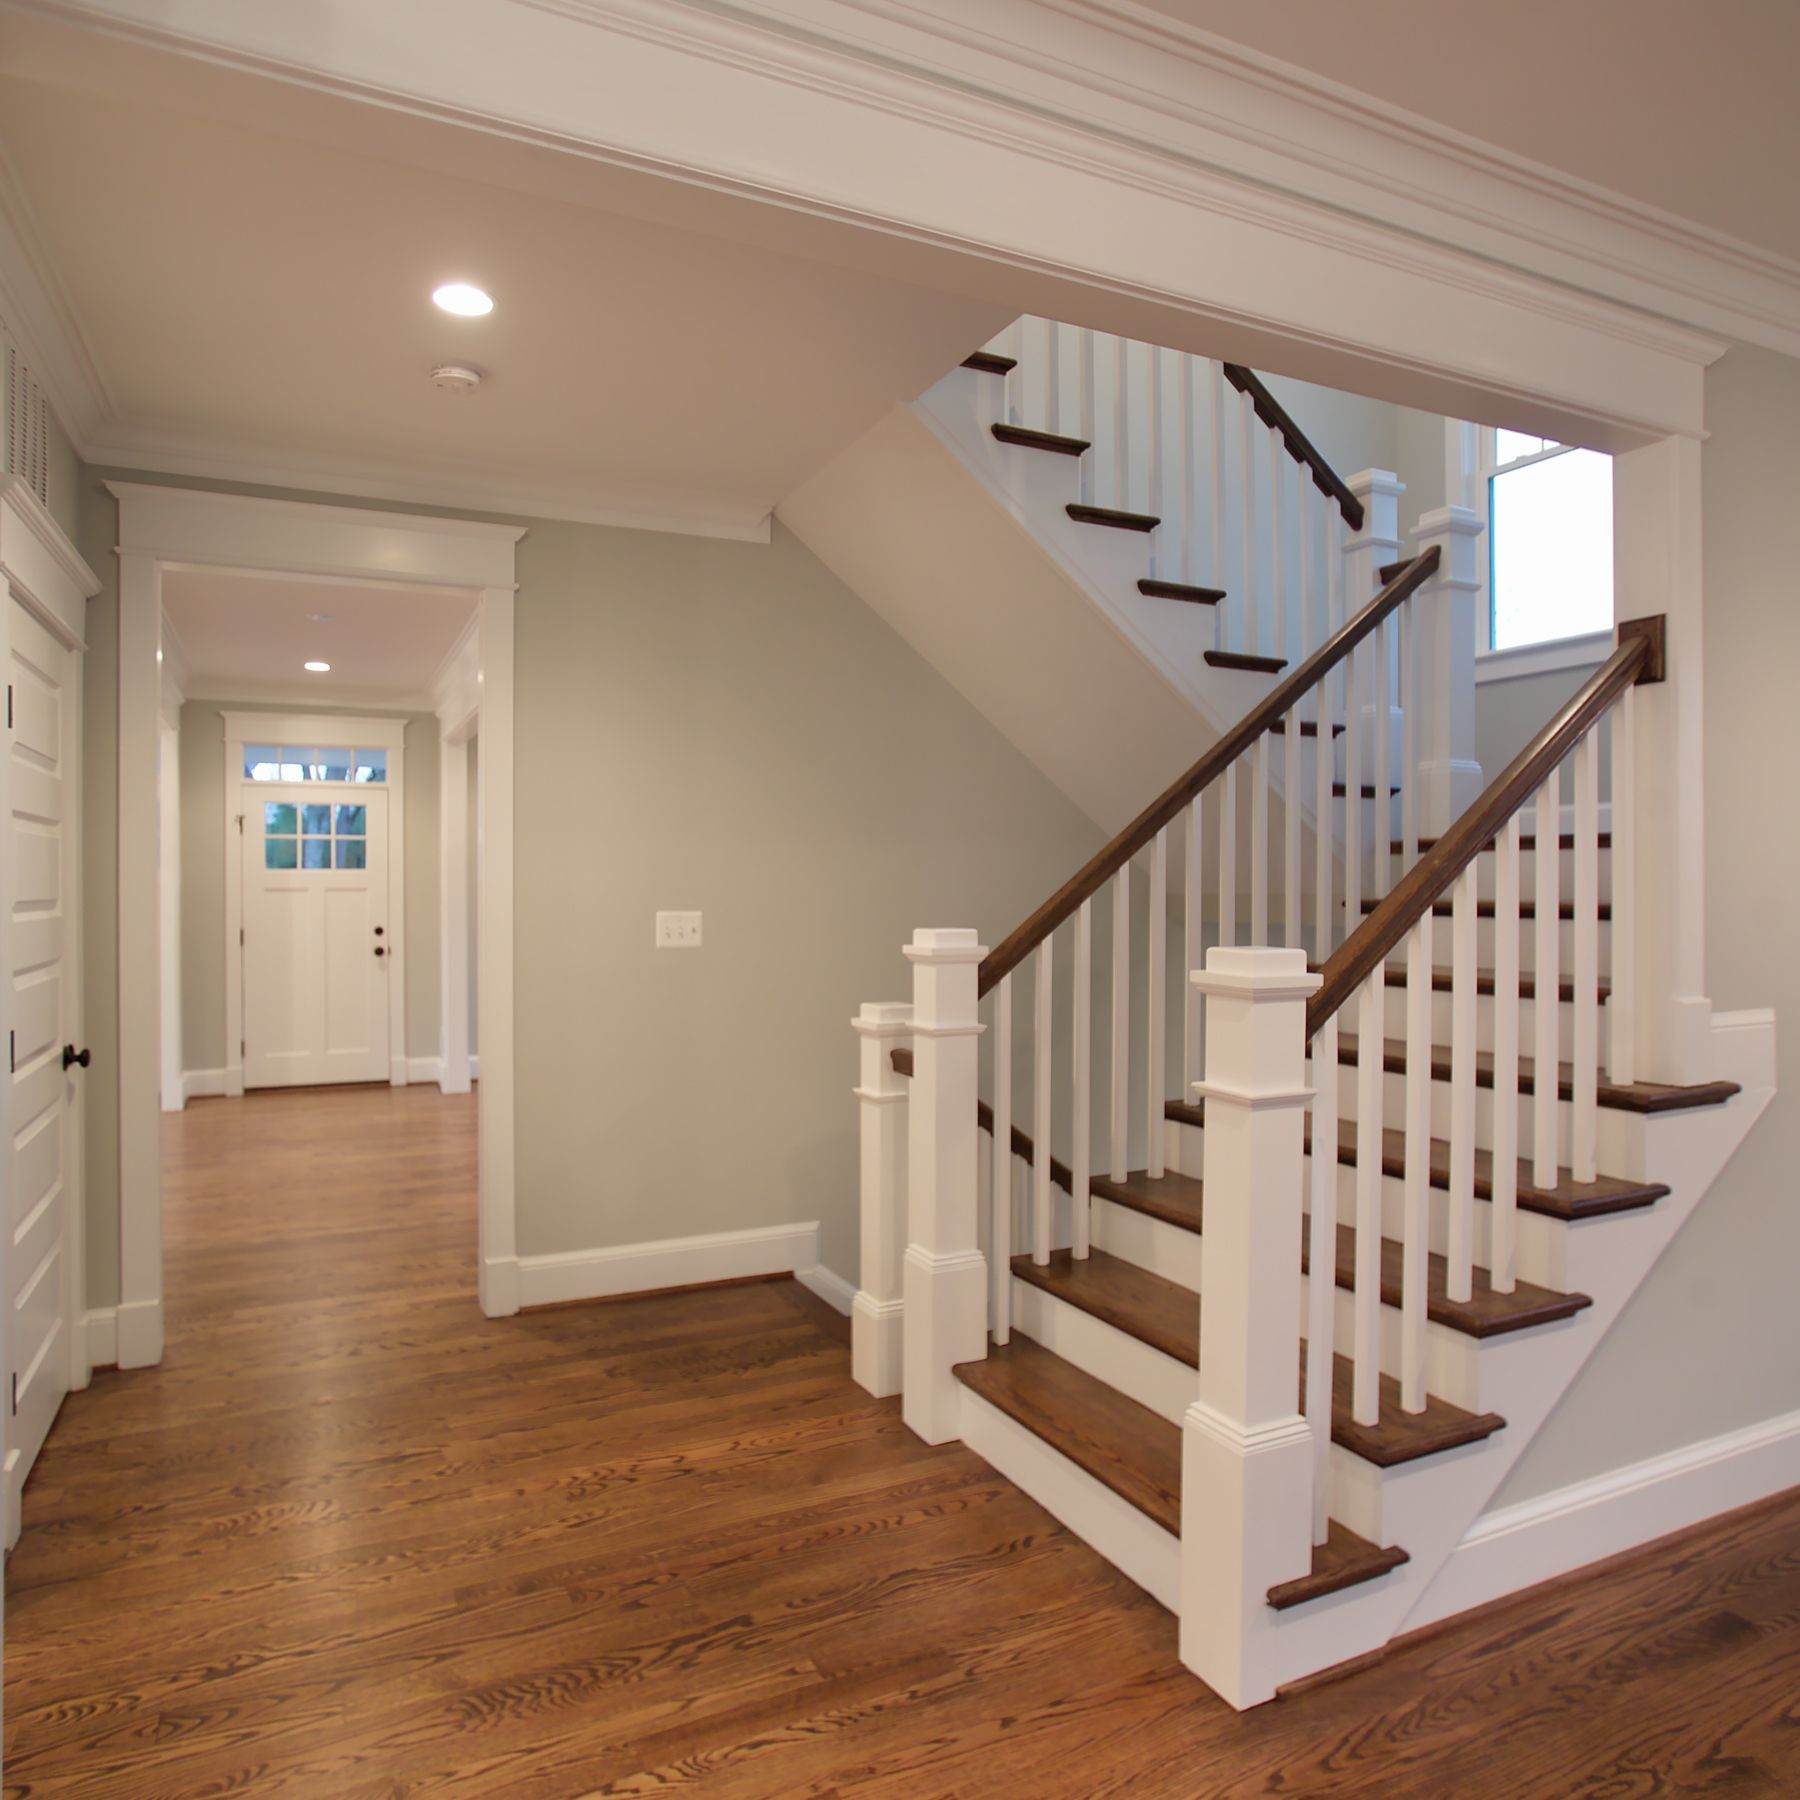 21 Attractive Painted Stairs Ideas Pictures: The Beautiful U-shaped Stair Has Hardwood Treads And